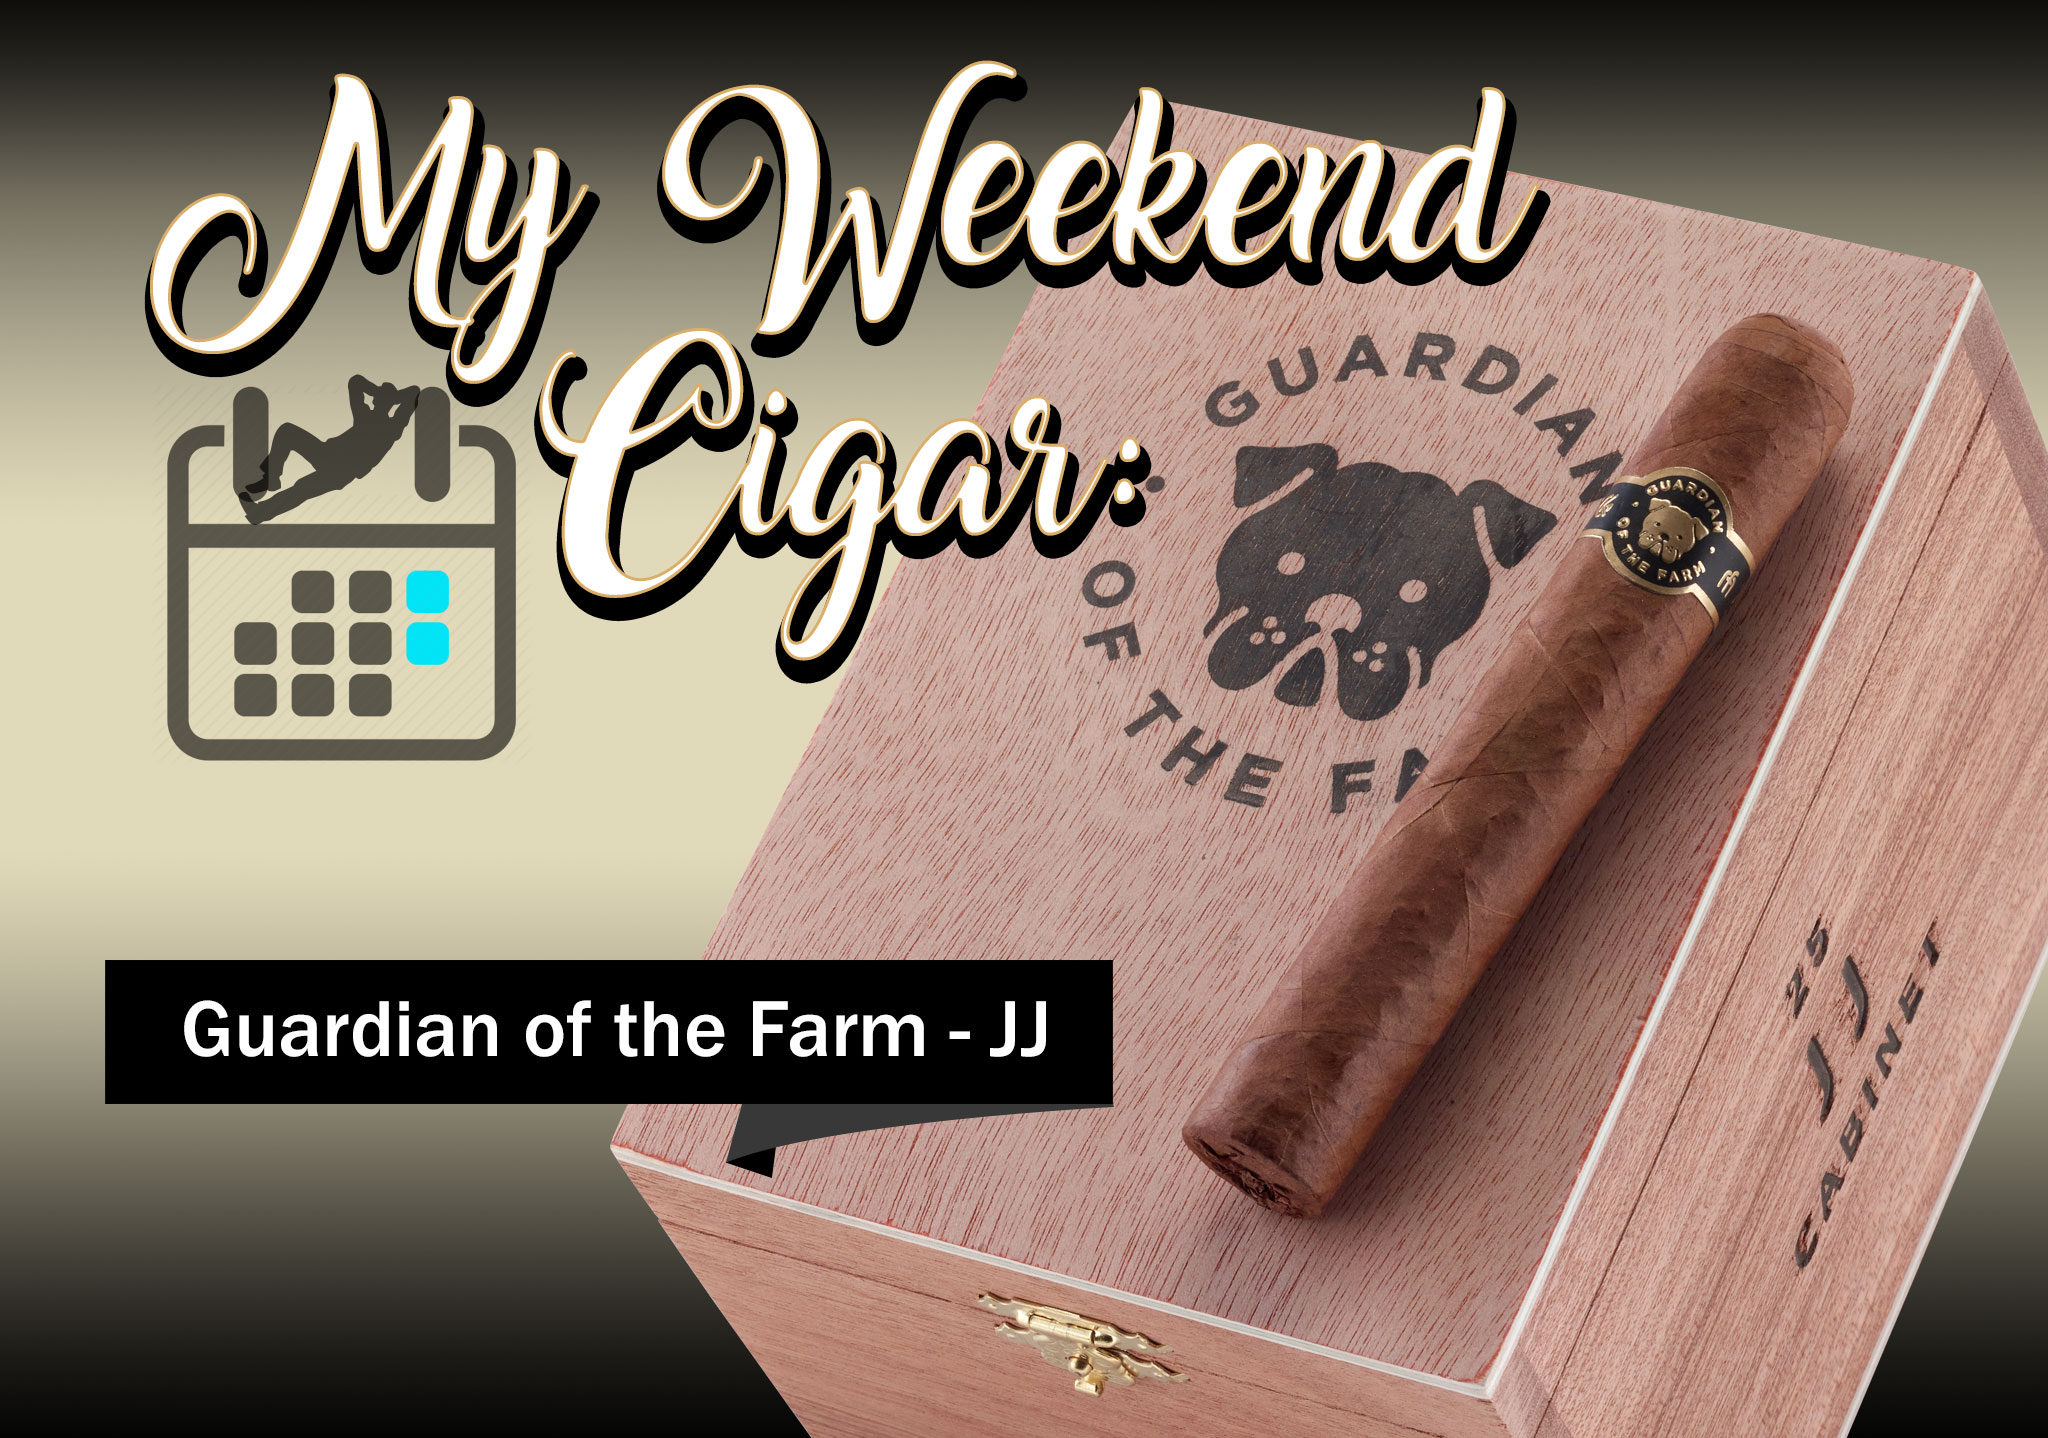 My Weekend Cigar: May 21, 2018 – Guardian of the Farm JJ